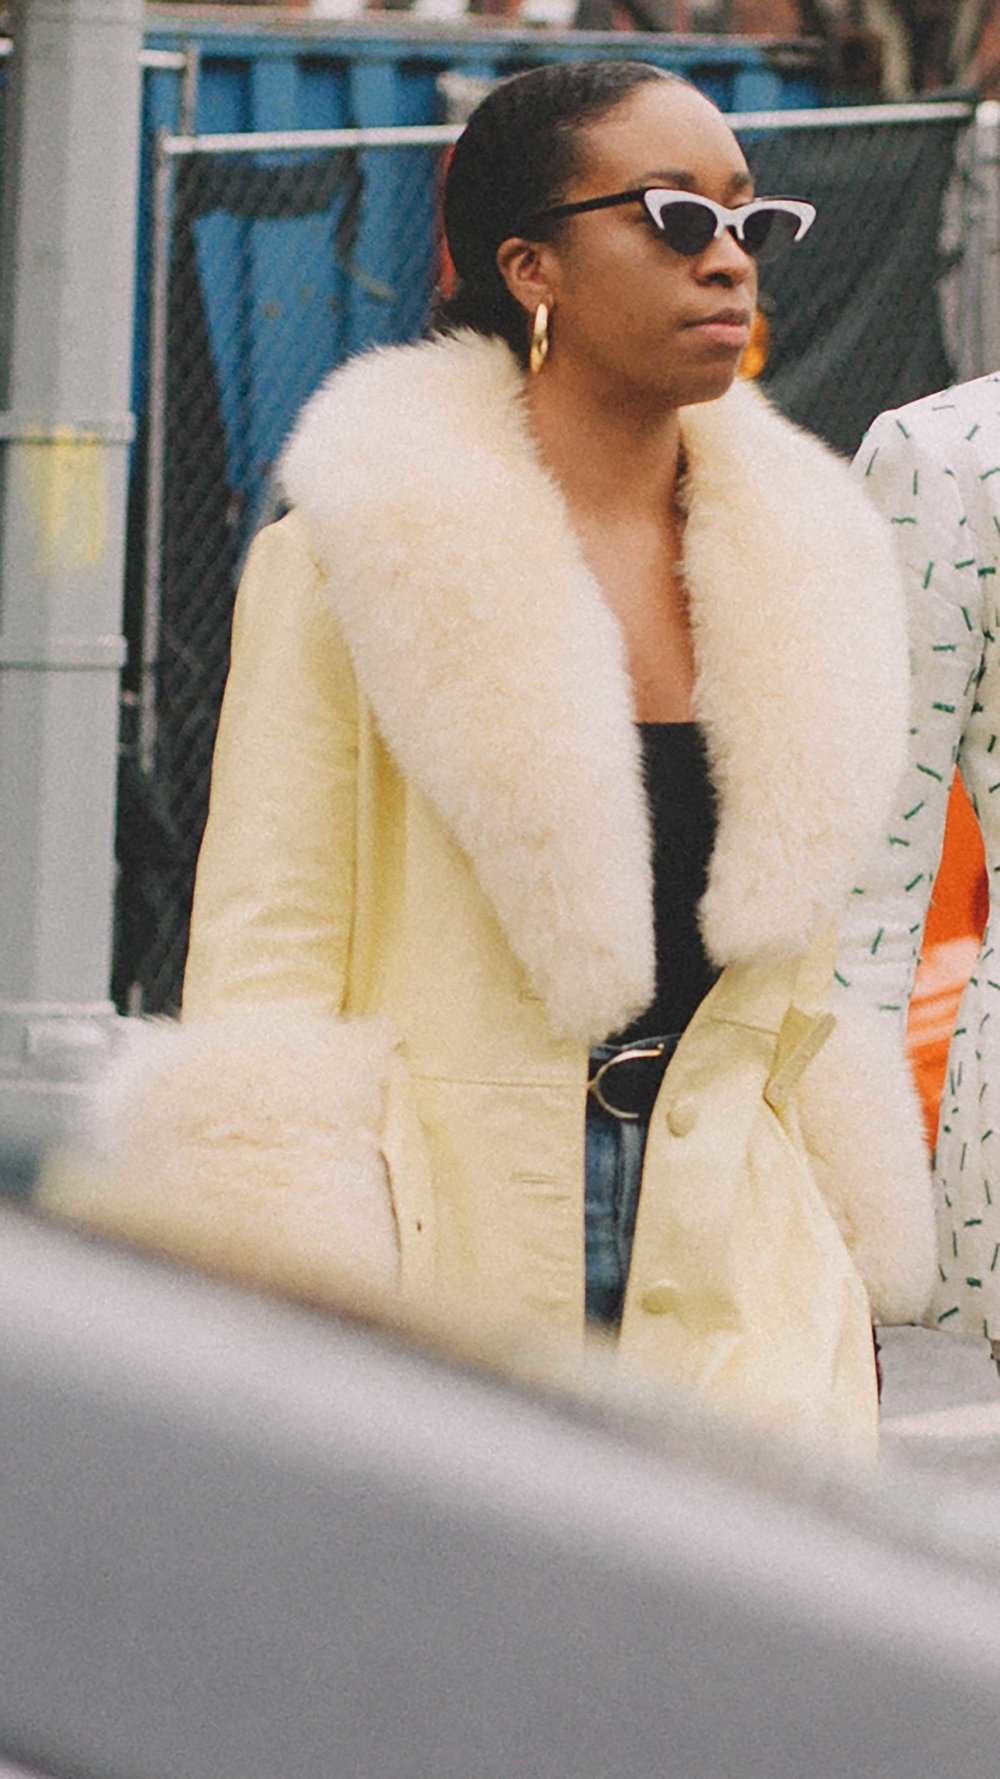 20 irresistible pastel outfit ideas for winter from New York Fashion Week street style17.jpg